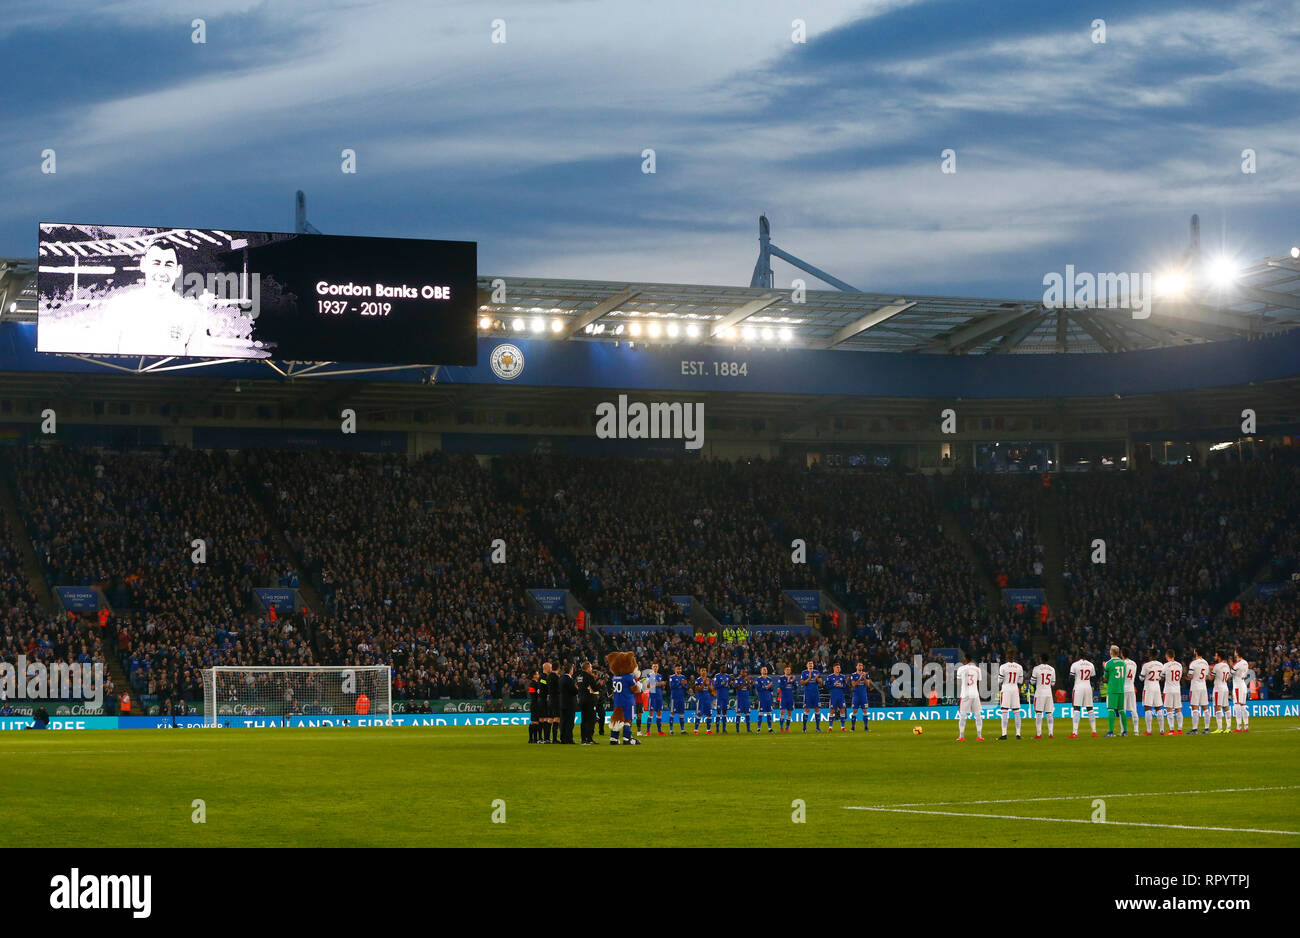 Leicester, UK. 23rd Feb, 2019. In Memory of Gordon Banks during English Premier League between Leicester City and Crystal Palace at King Power stadium, Leicester, England on 23 Feb 2019. Credit: Action Foto Sport/Alamy Live News - Stock Image